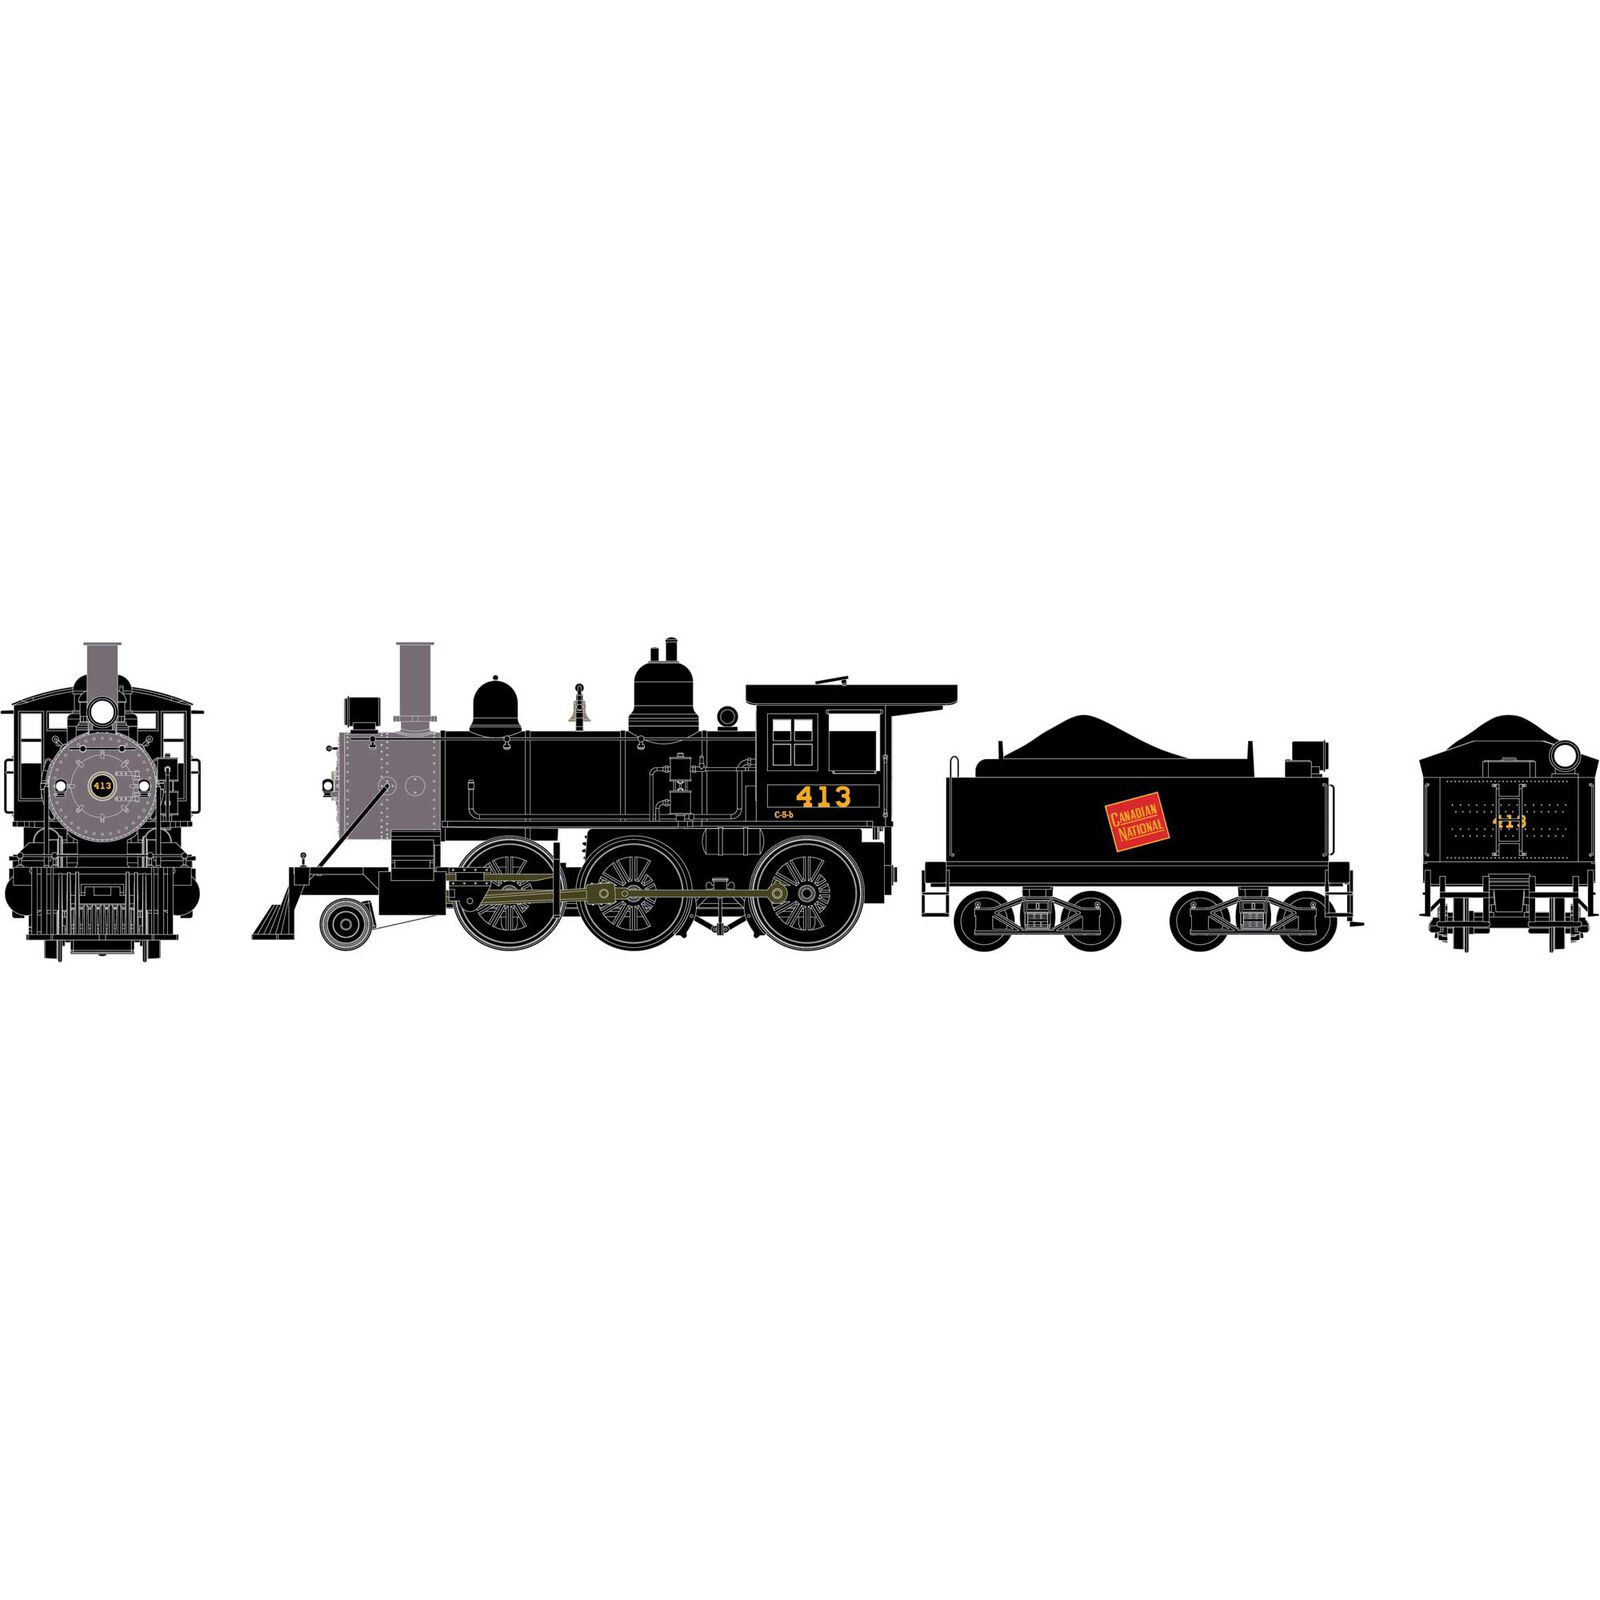 HO RTR Old Time 2-6-0 Mogul with DCC & Sound, CN #413